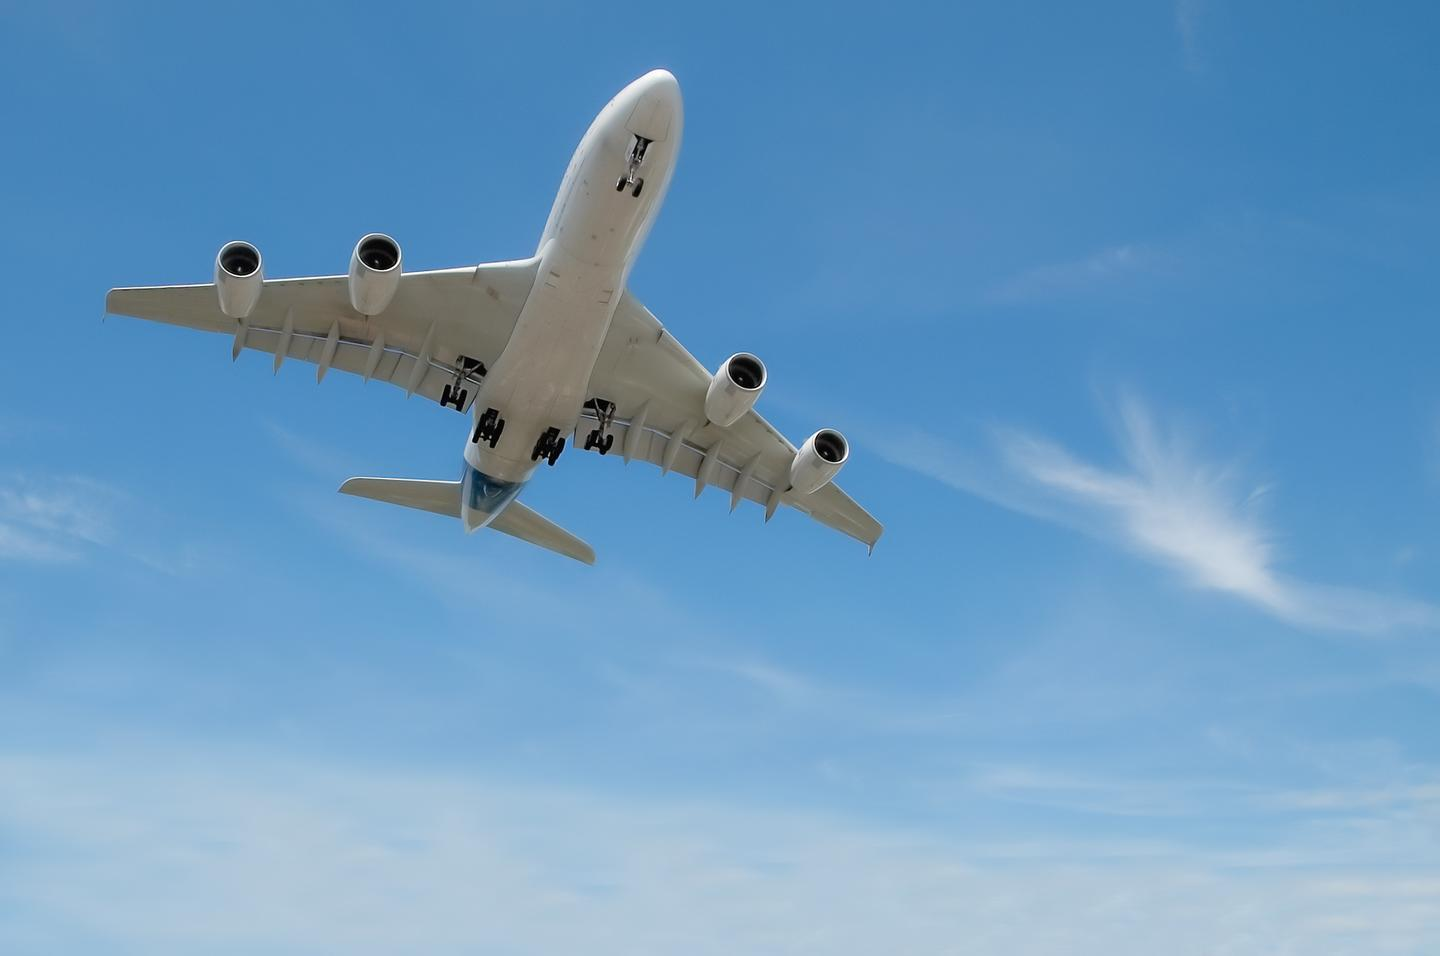 Airliners may be getting quieter – on the inside (Photo: Shutterstock)